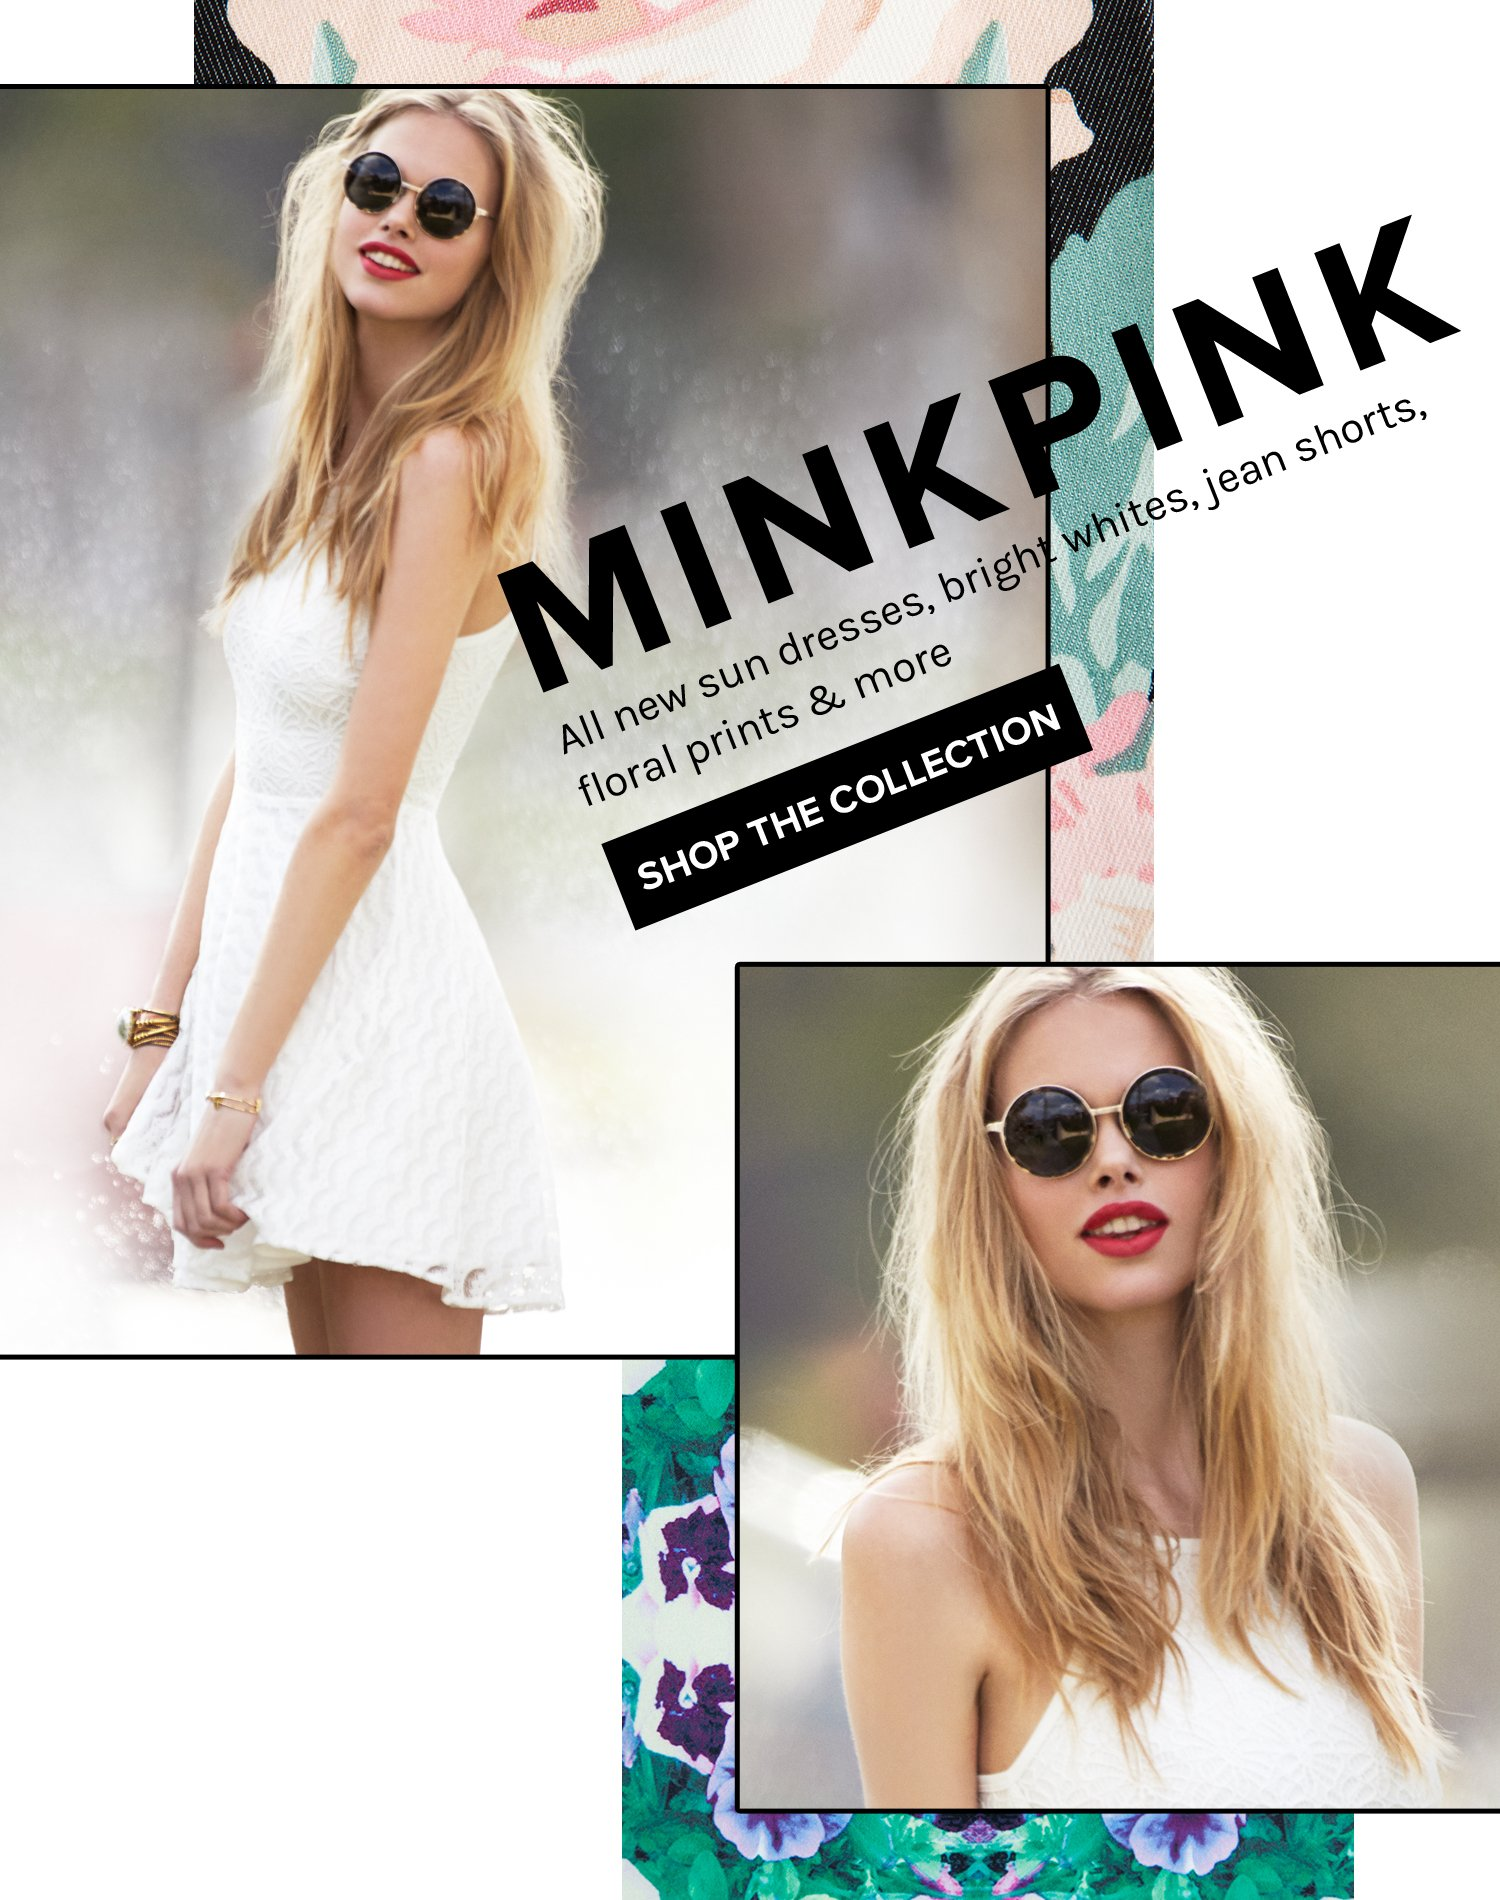 MINKPINK. All new sun dresses, bright whites, jean shorts, floral prints & more.  SHOP THE COLLECTION!